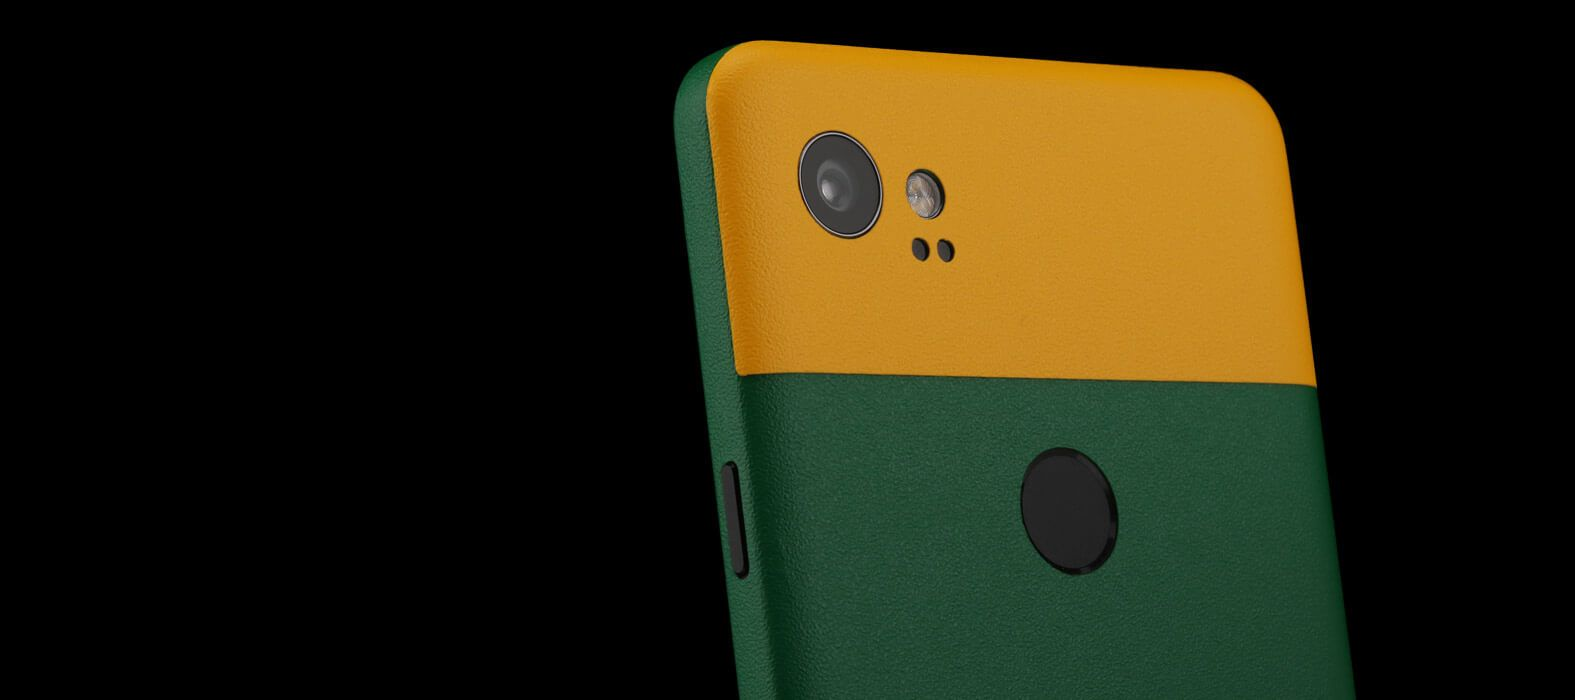 Pixel 2 XL Skins Sandstone Green Split Wraps & Decals